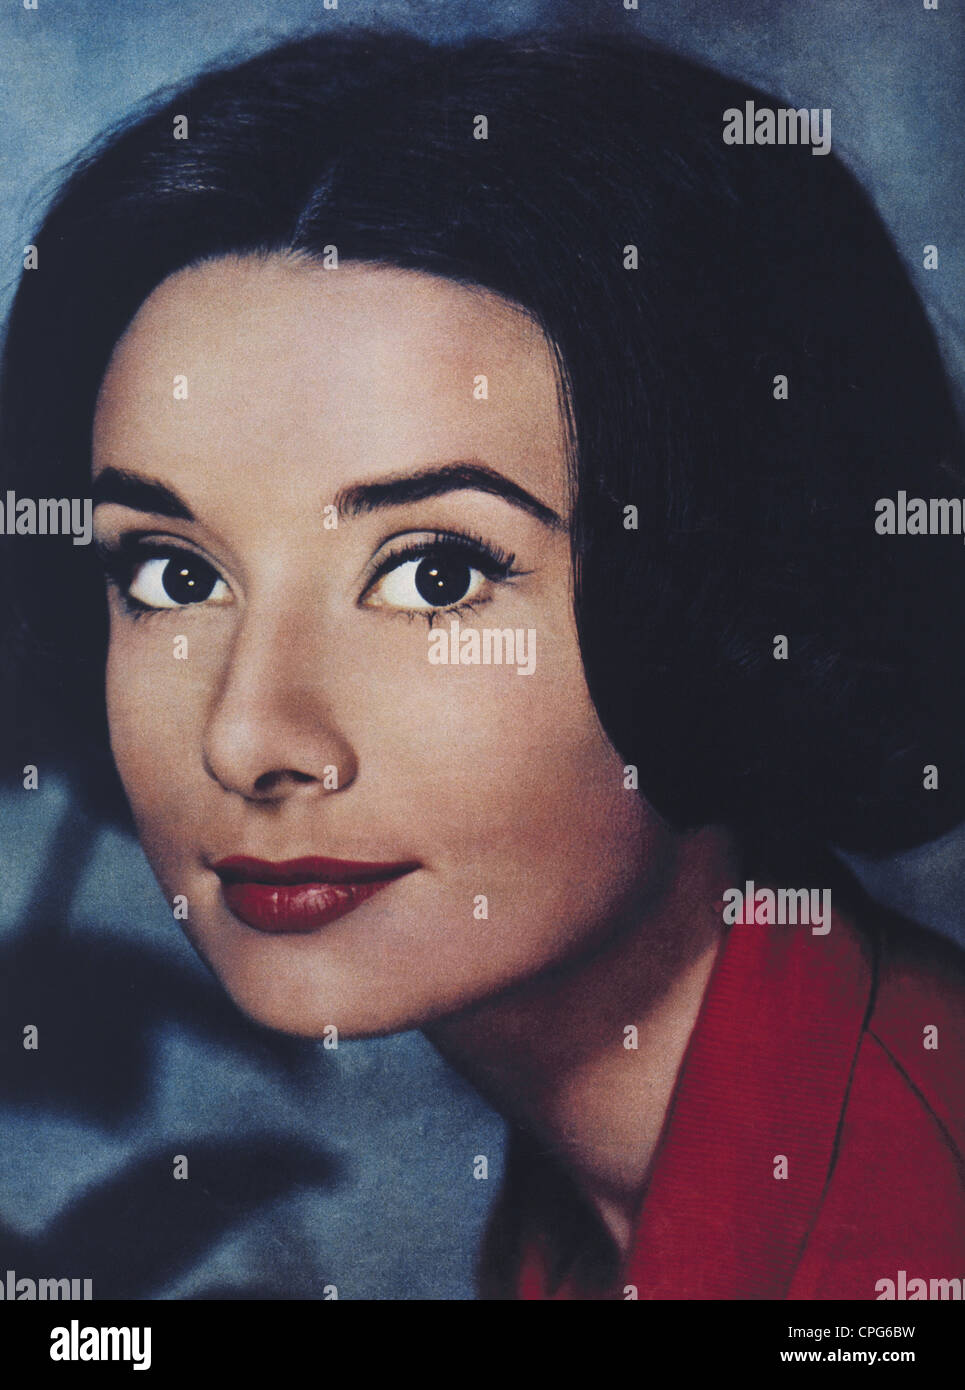 Hepburn, Audrey, 4.5.1929 - 20.1.1993, British actress, portrait, 1958, , Additional-Rights-Clearances-NA - Stock Image